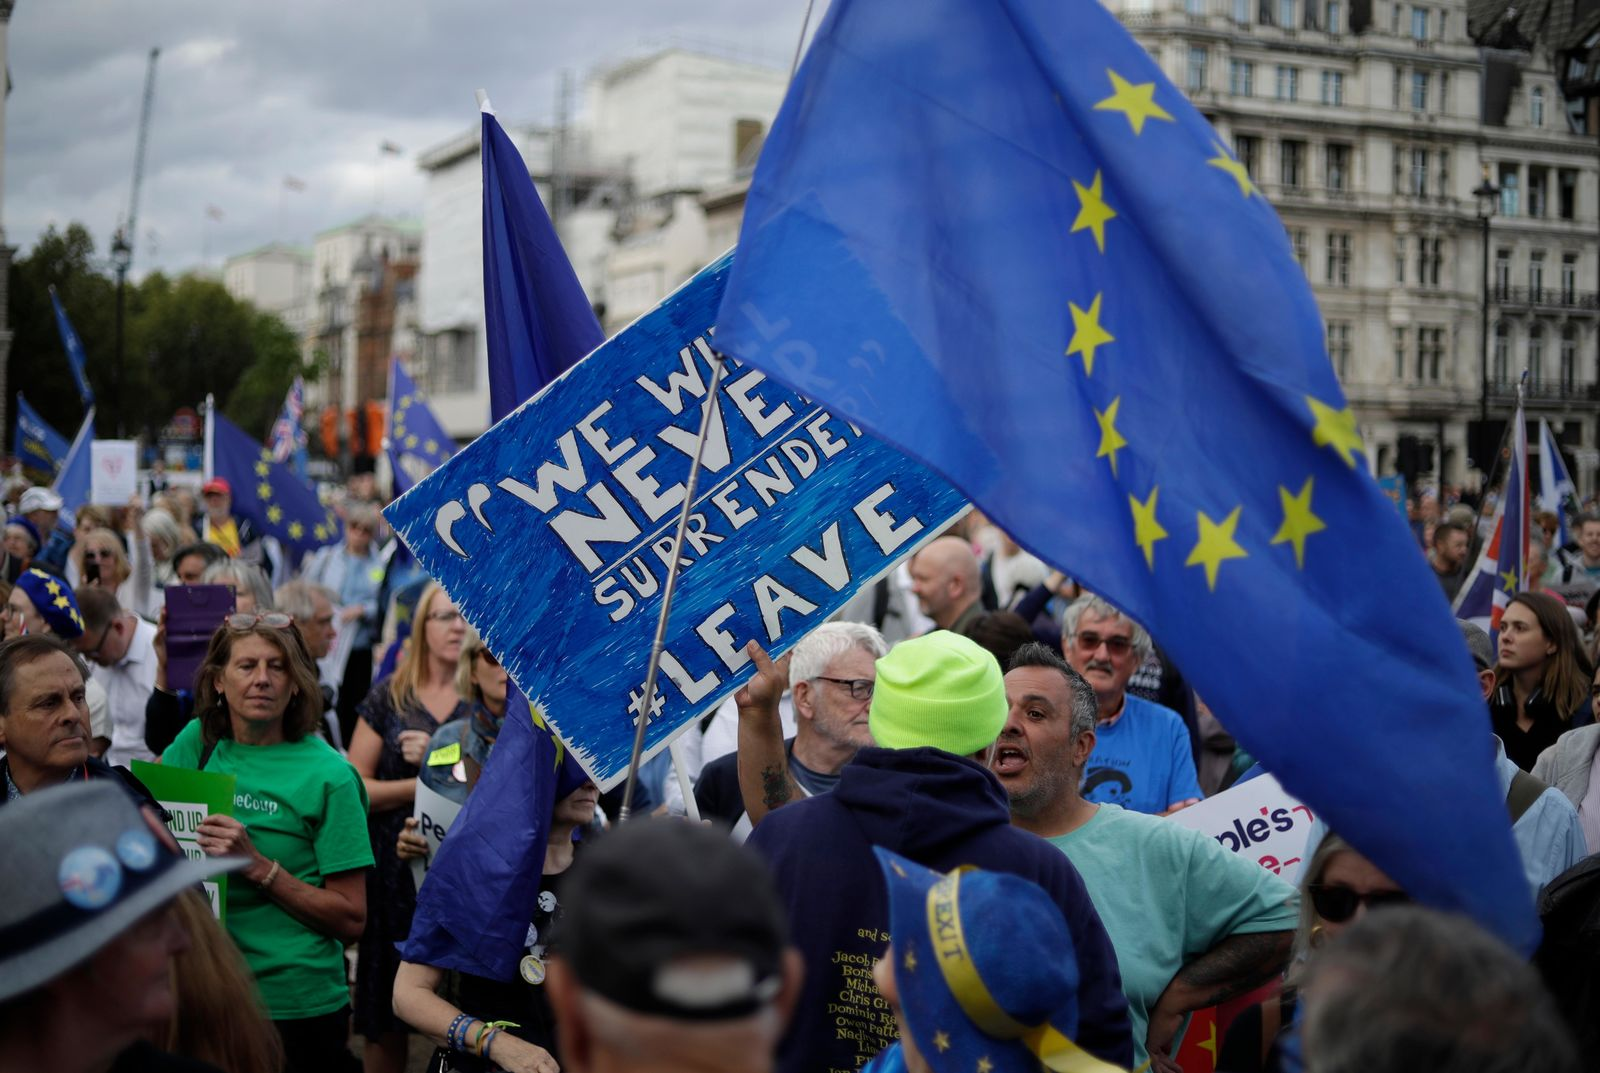 A leave supporter, left holding sign, tussles with a remain supporter, right holding EU flag, during a demonstration on Parliament Square in London, Wednesday, Sept. 4, 2019. (AP Photo/Matt Dunham)